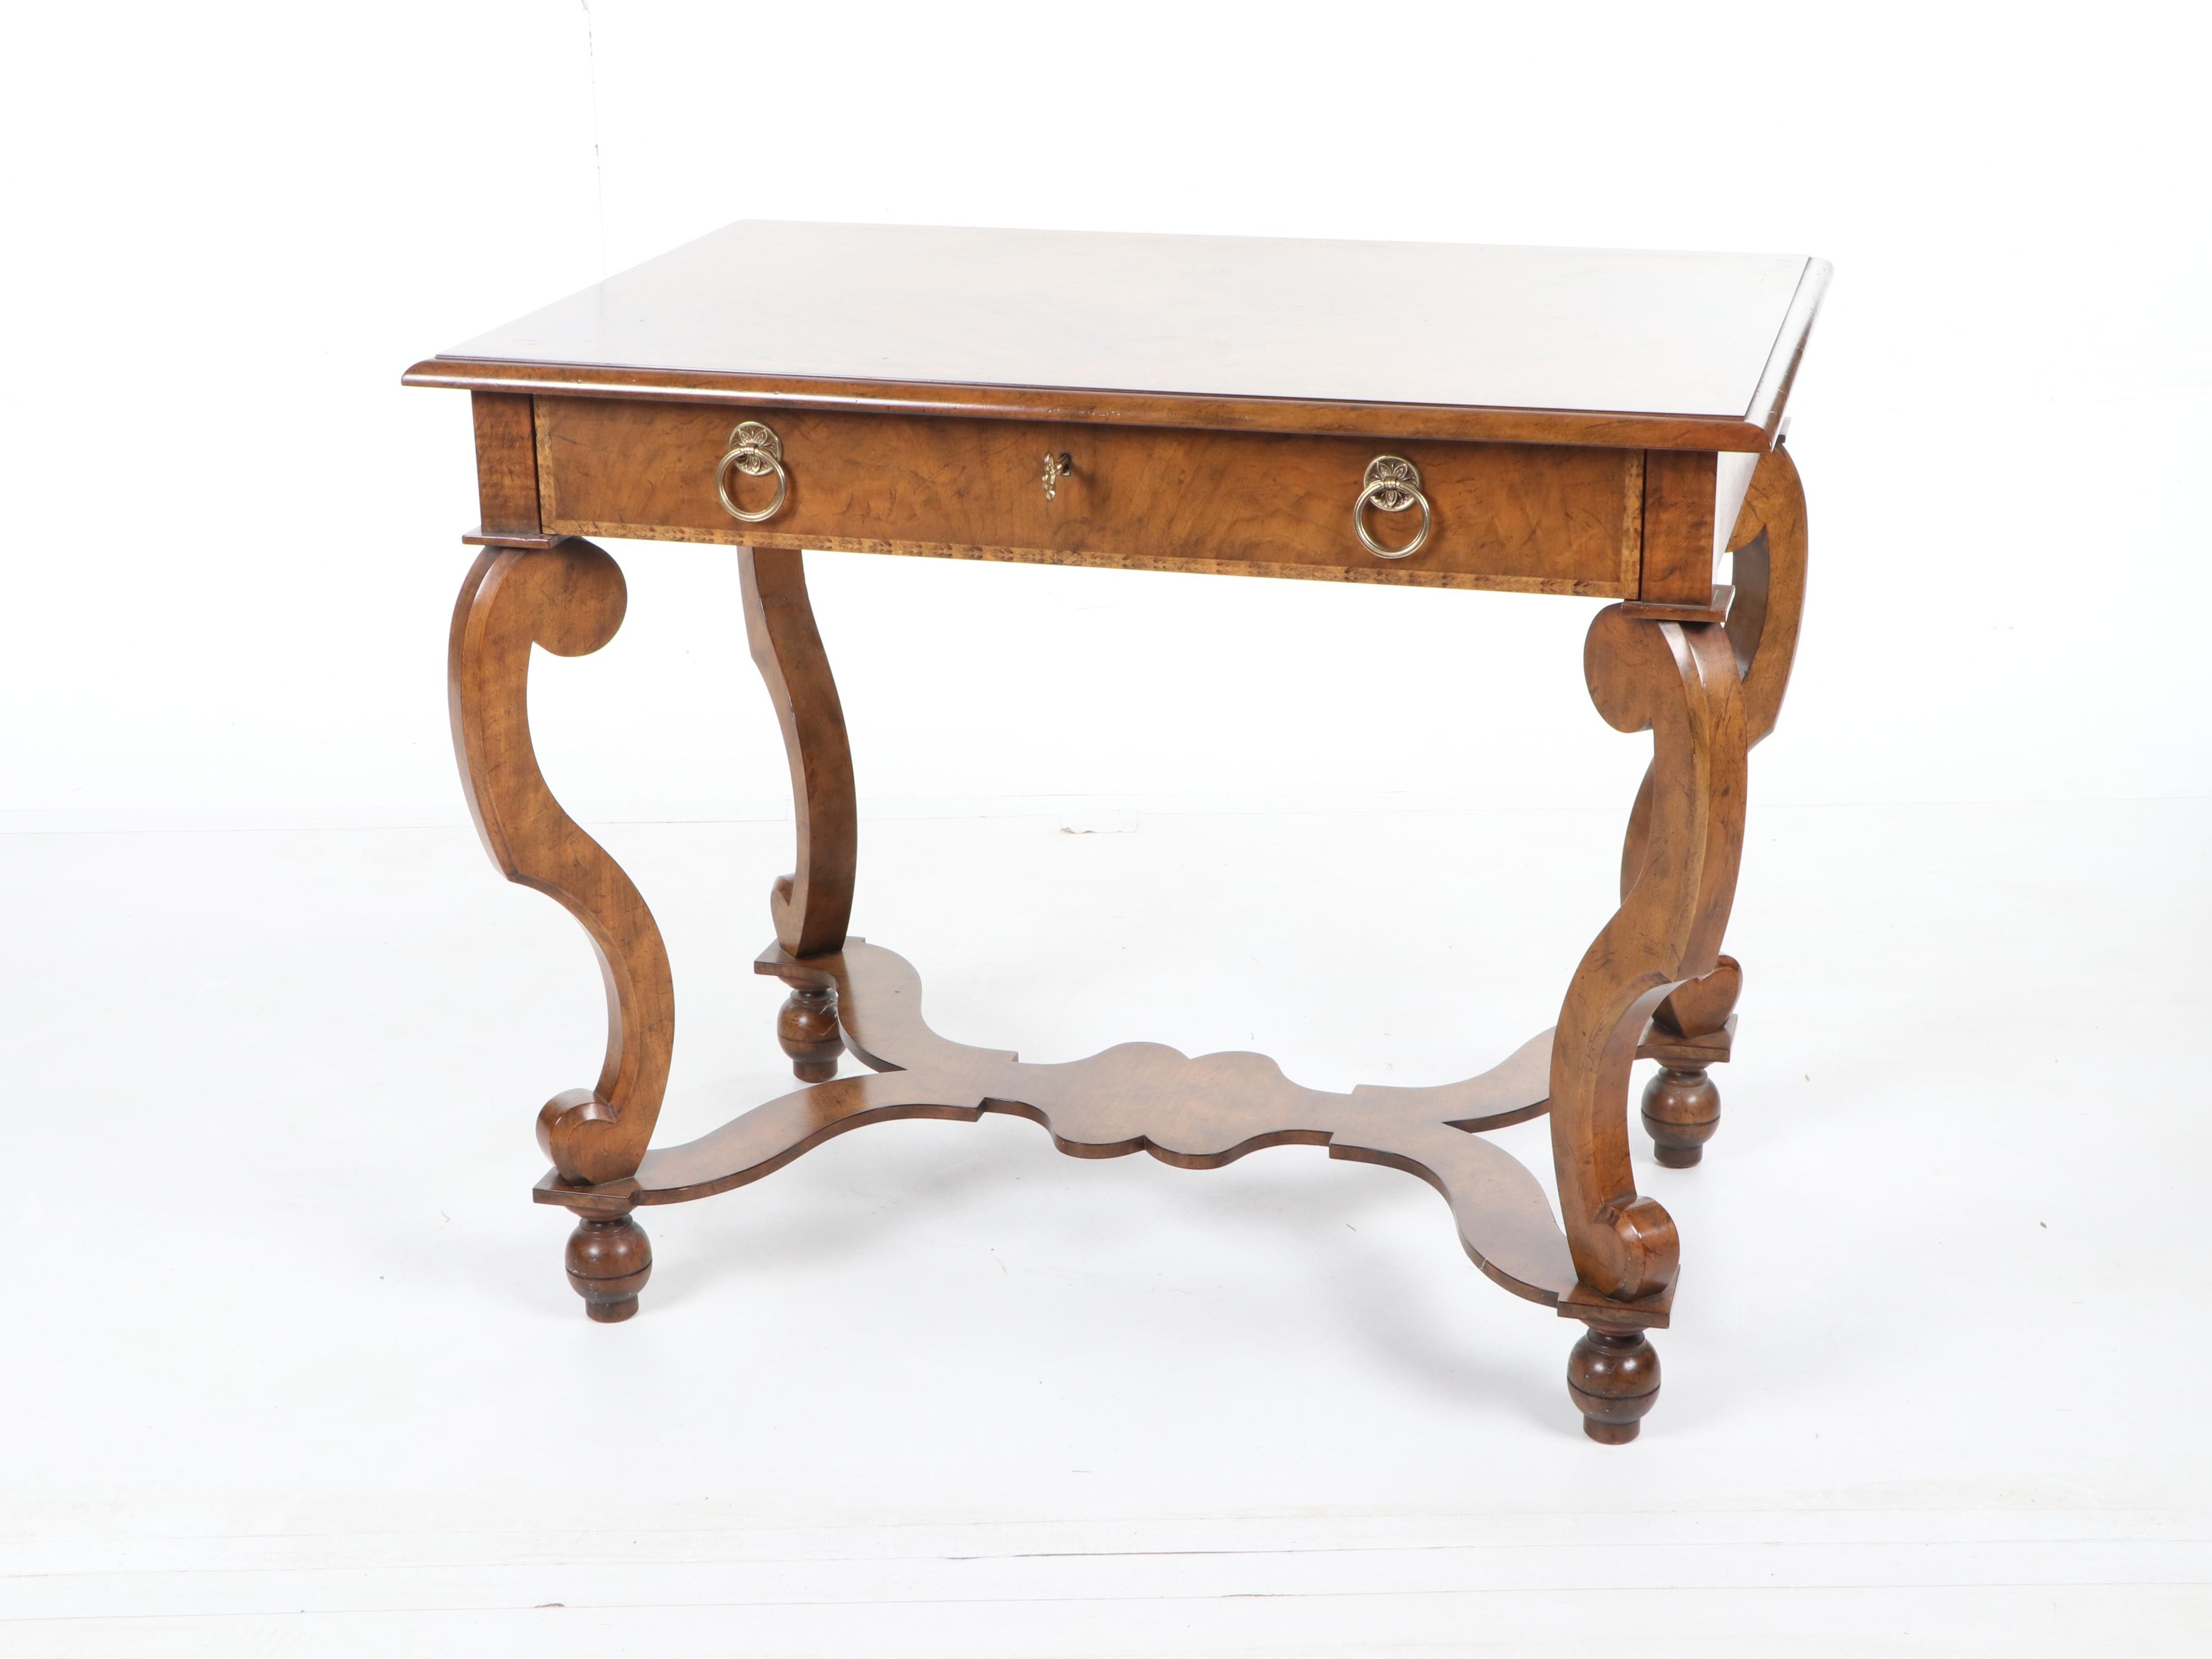 American Empire Style Walnut Entry Table by Baker Furniture, 21st Century